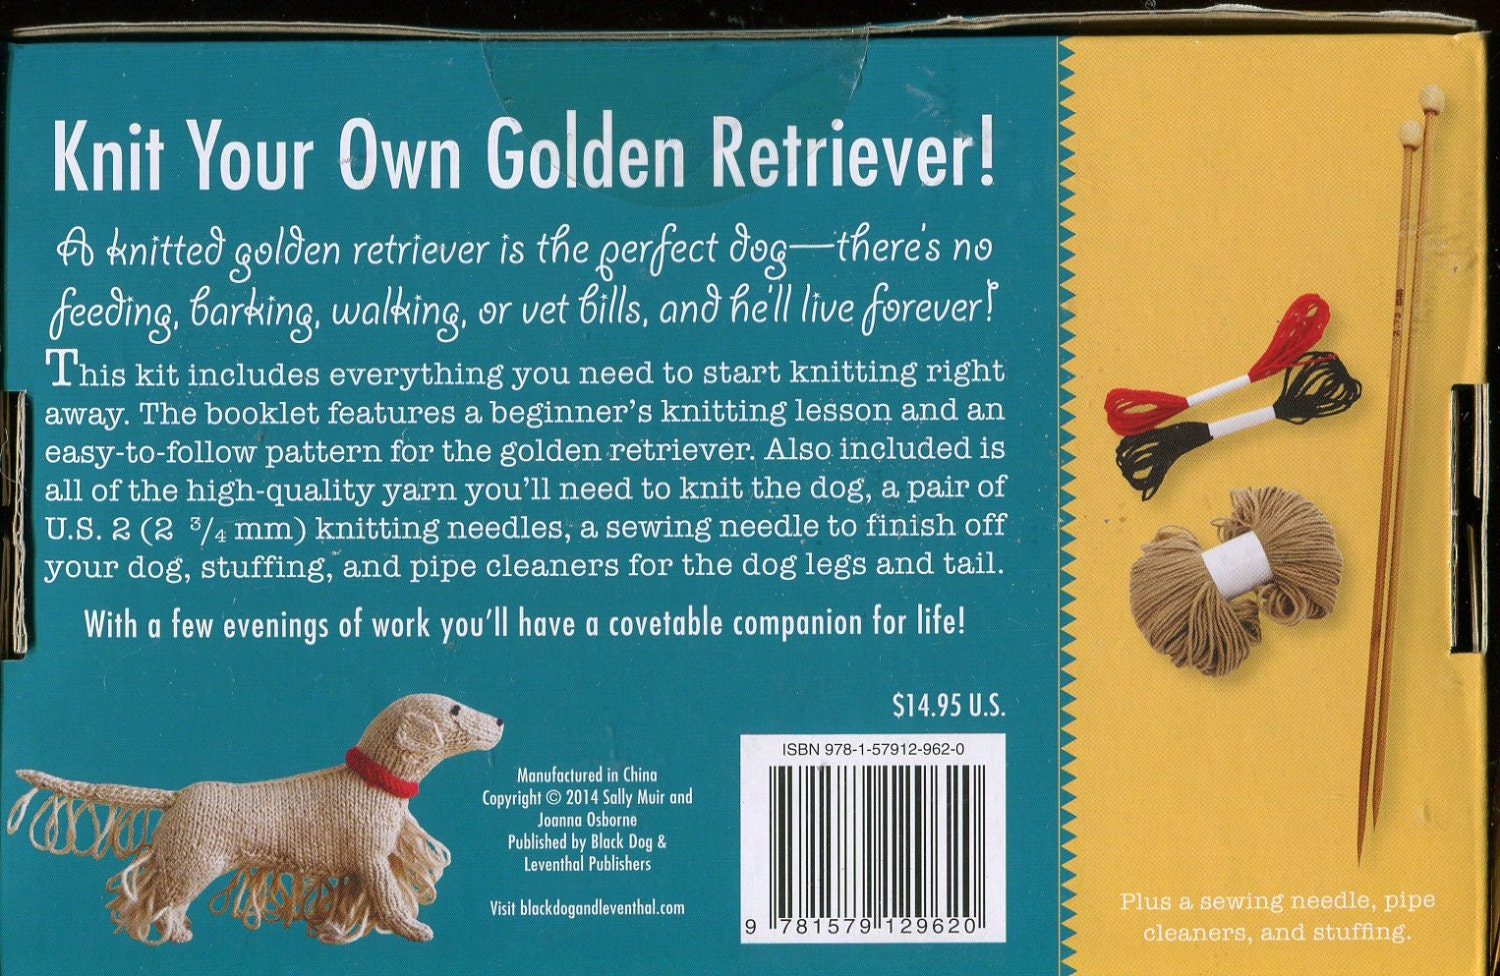 Knit Your Own Dog Kit Golden Retriever By Sally Muir And